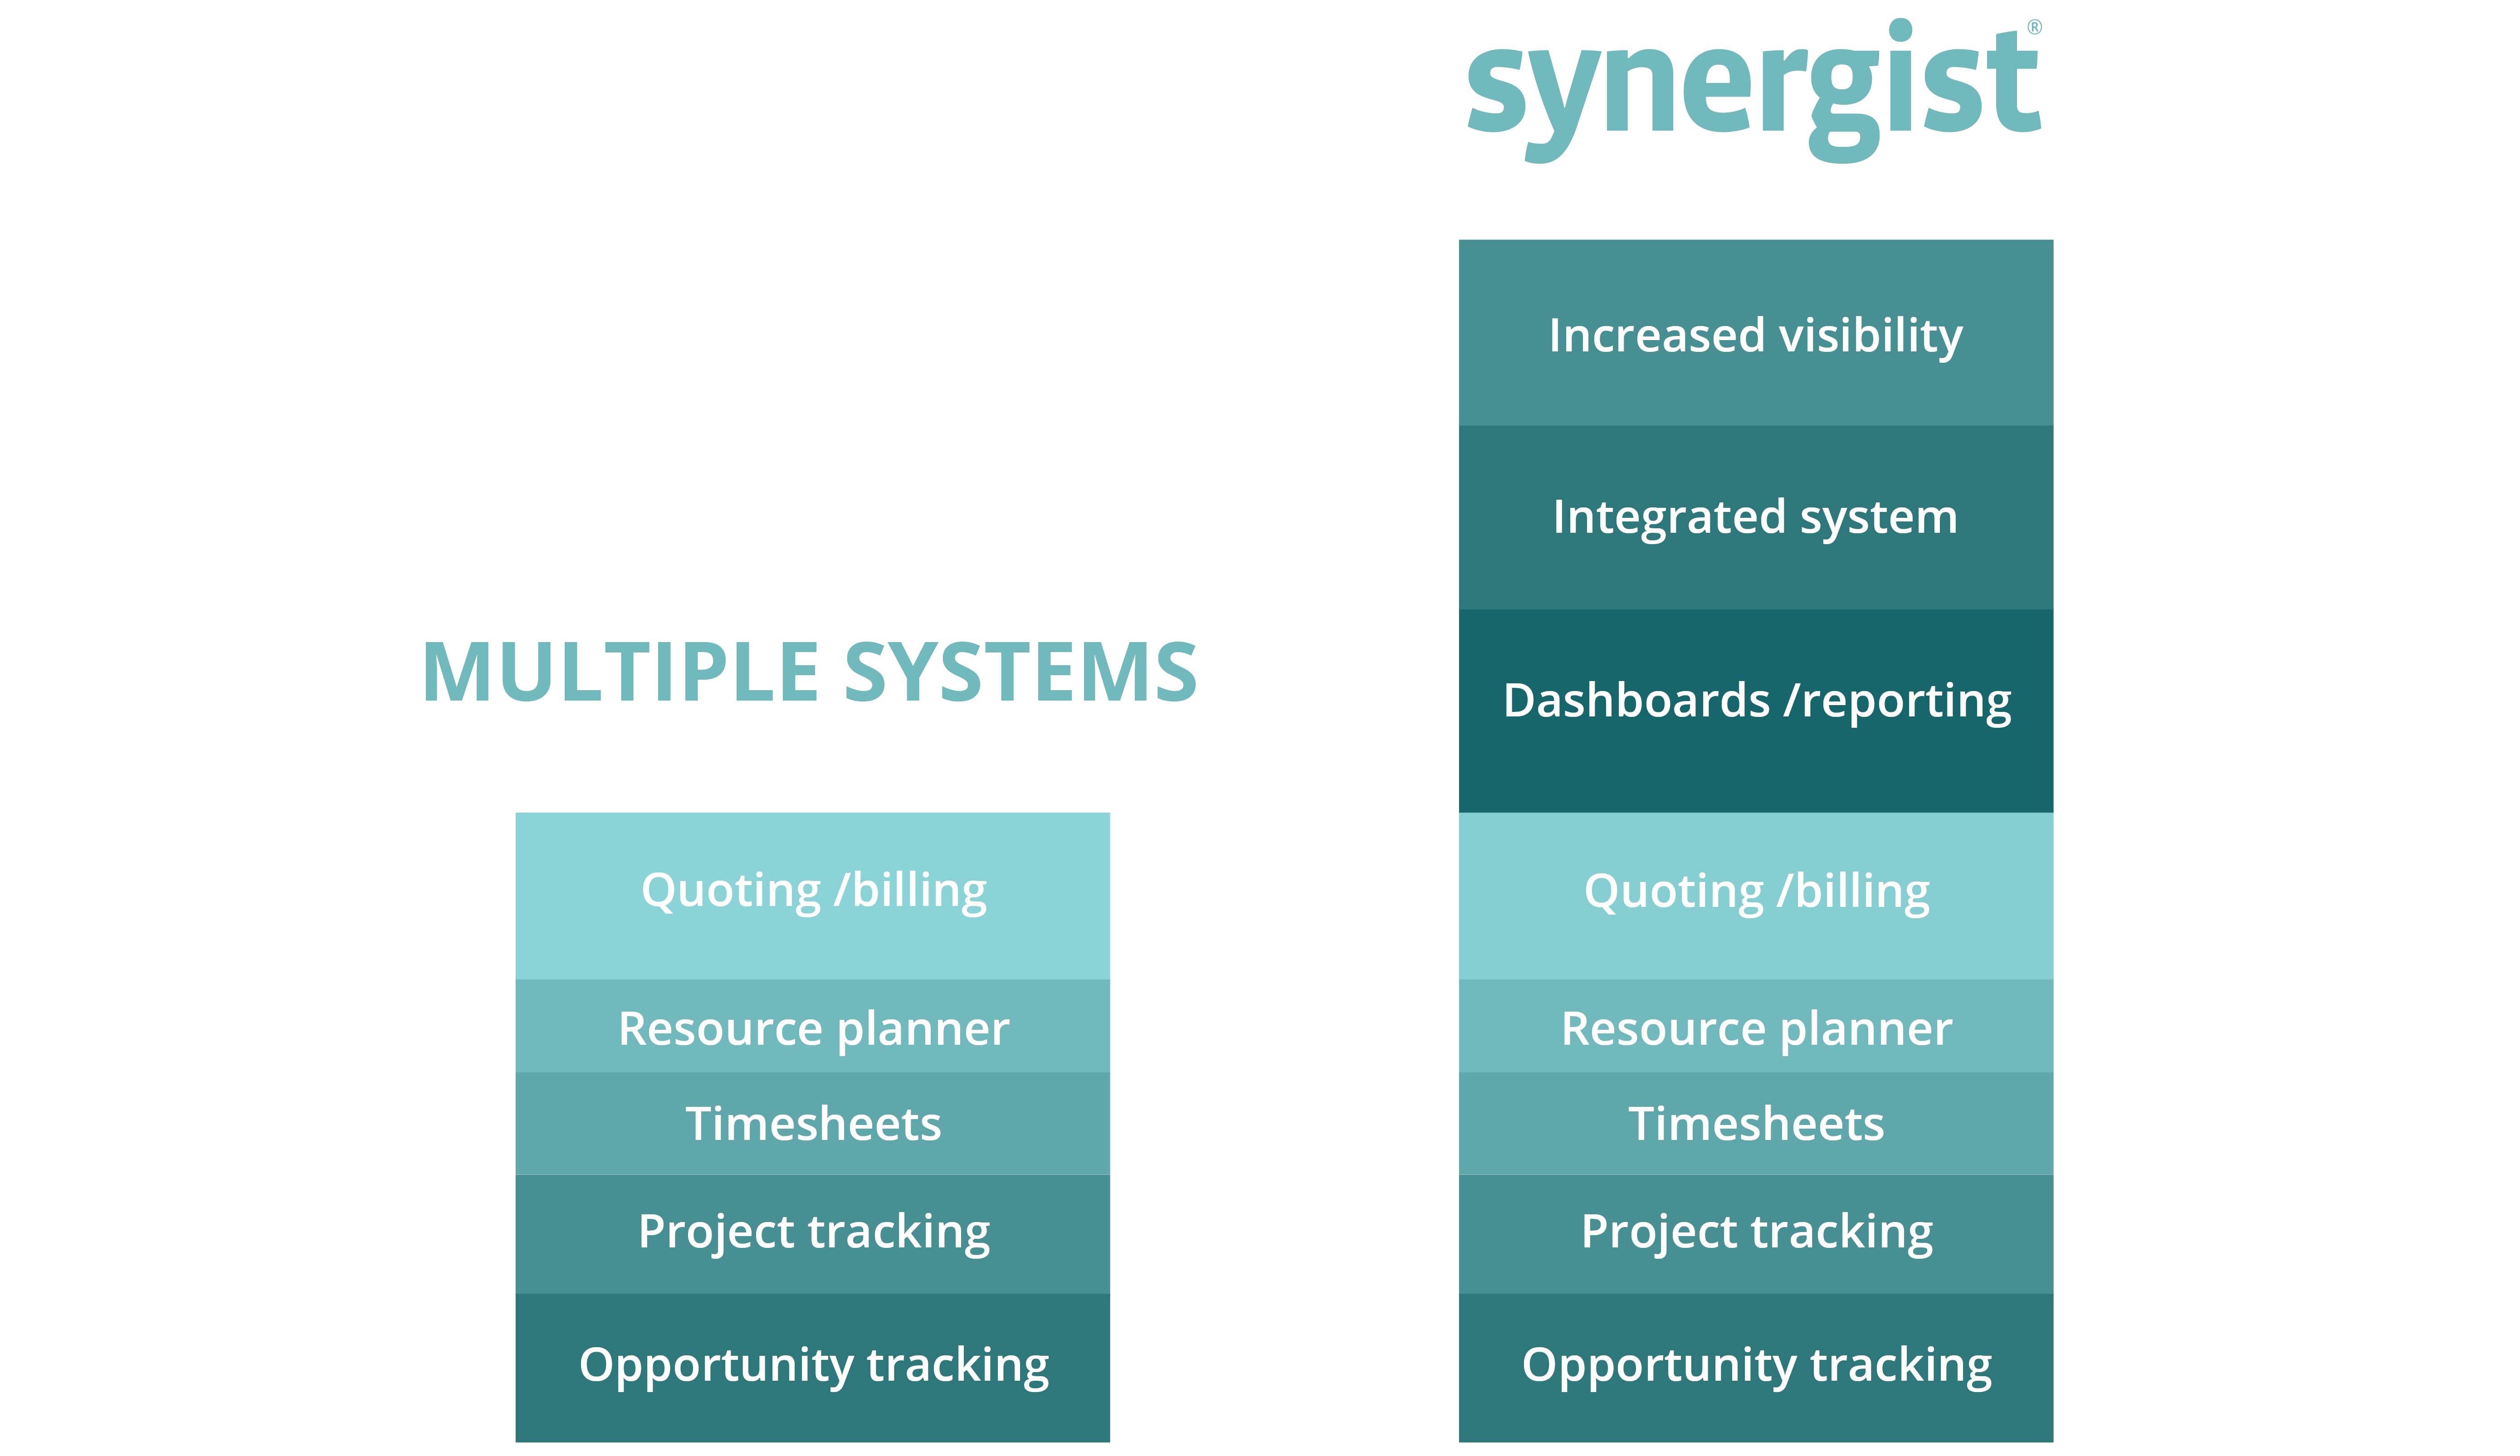 Multiple systems vs Synergist